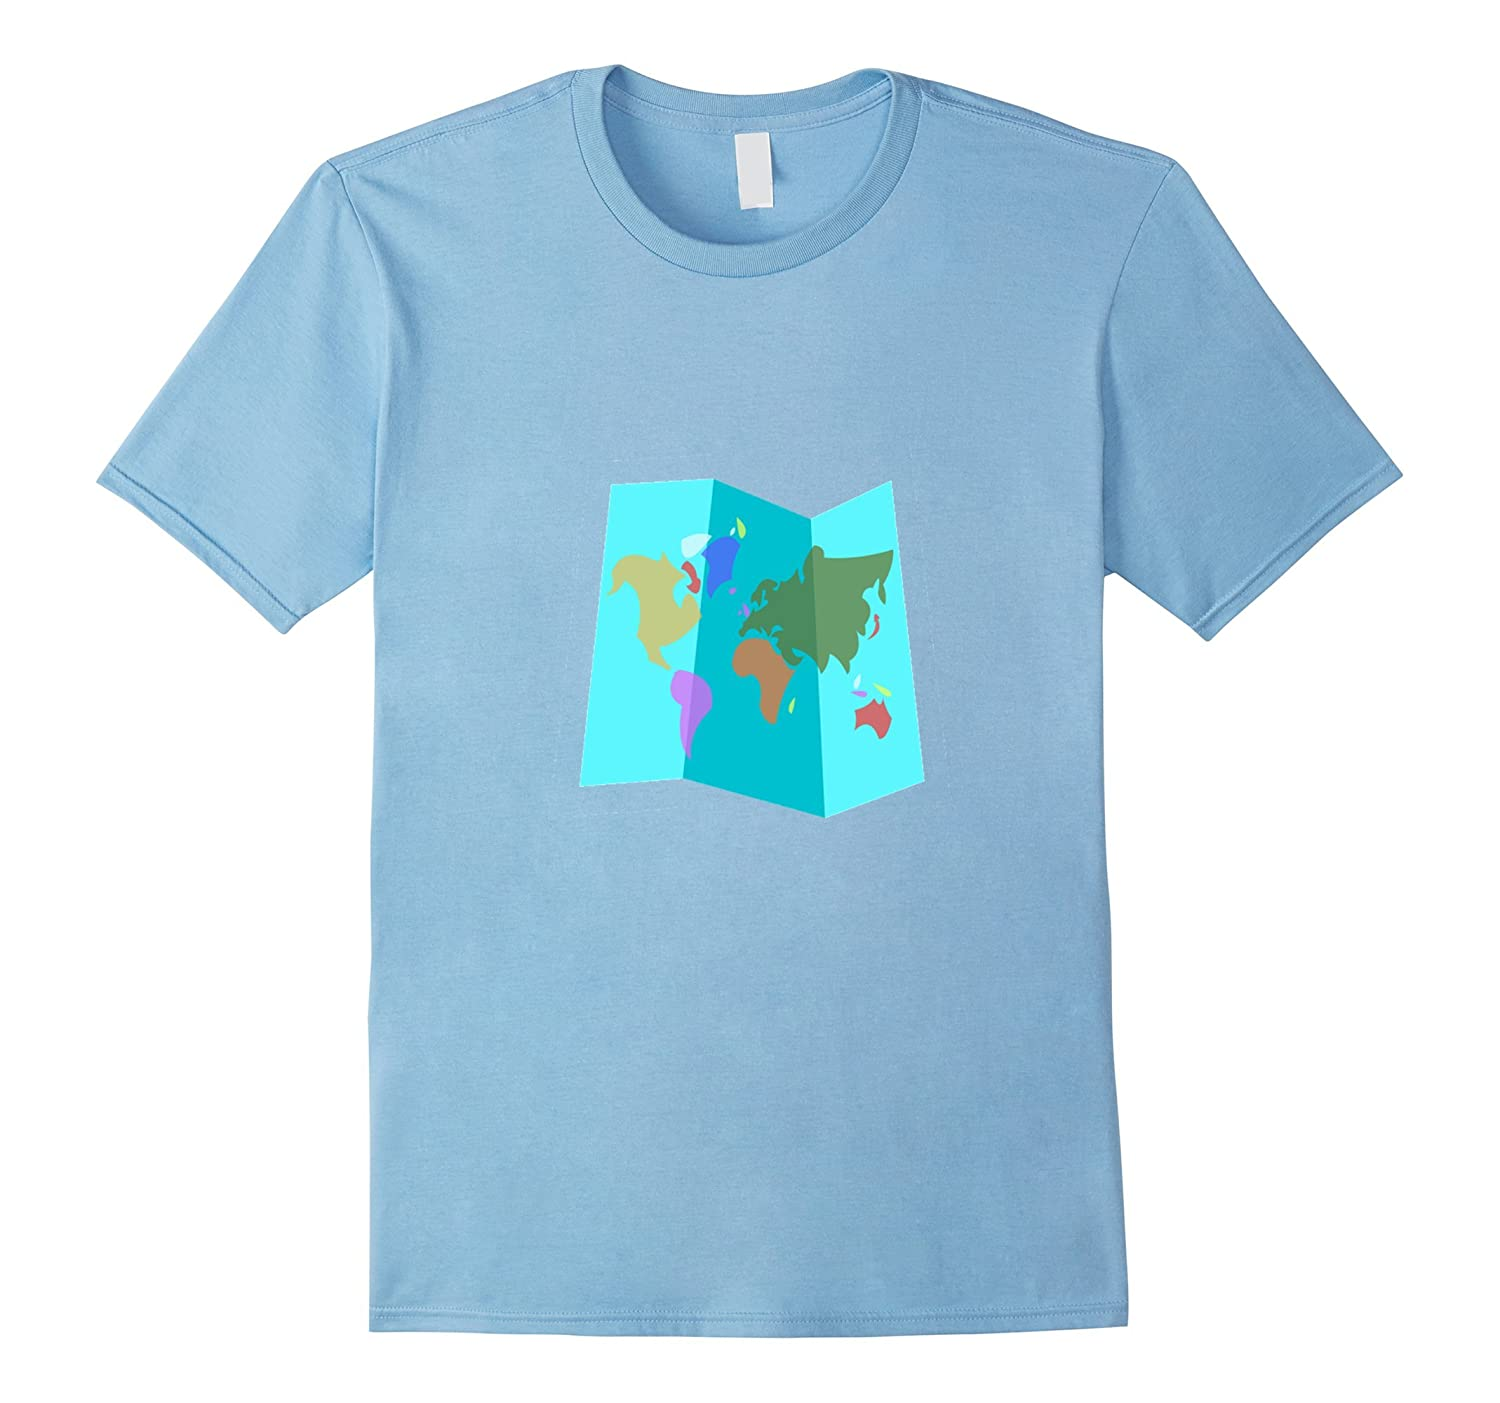 World Map T Shirt Continents Countries Oceans Globe ANZ